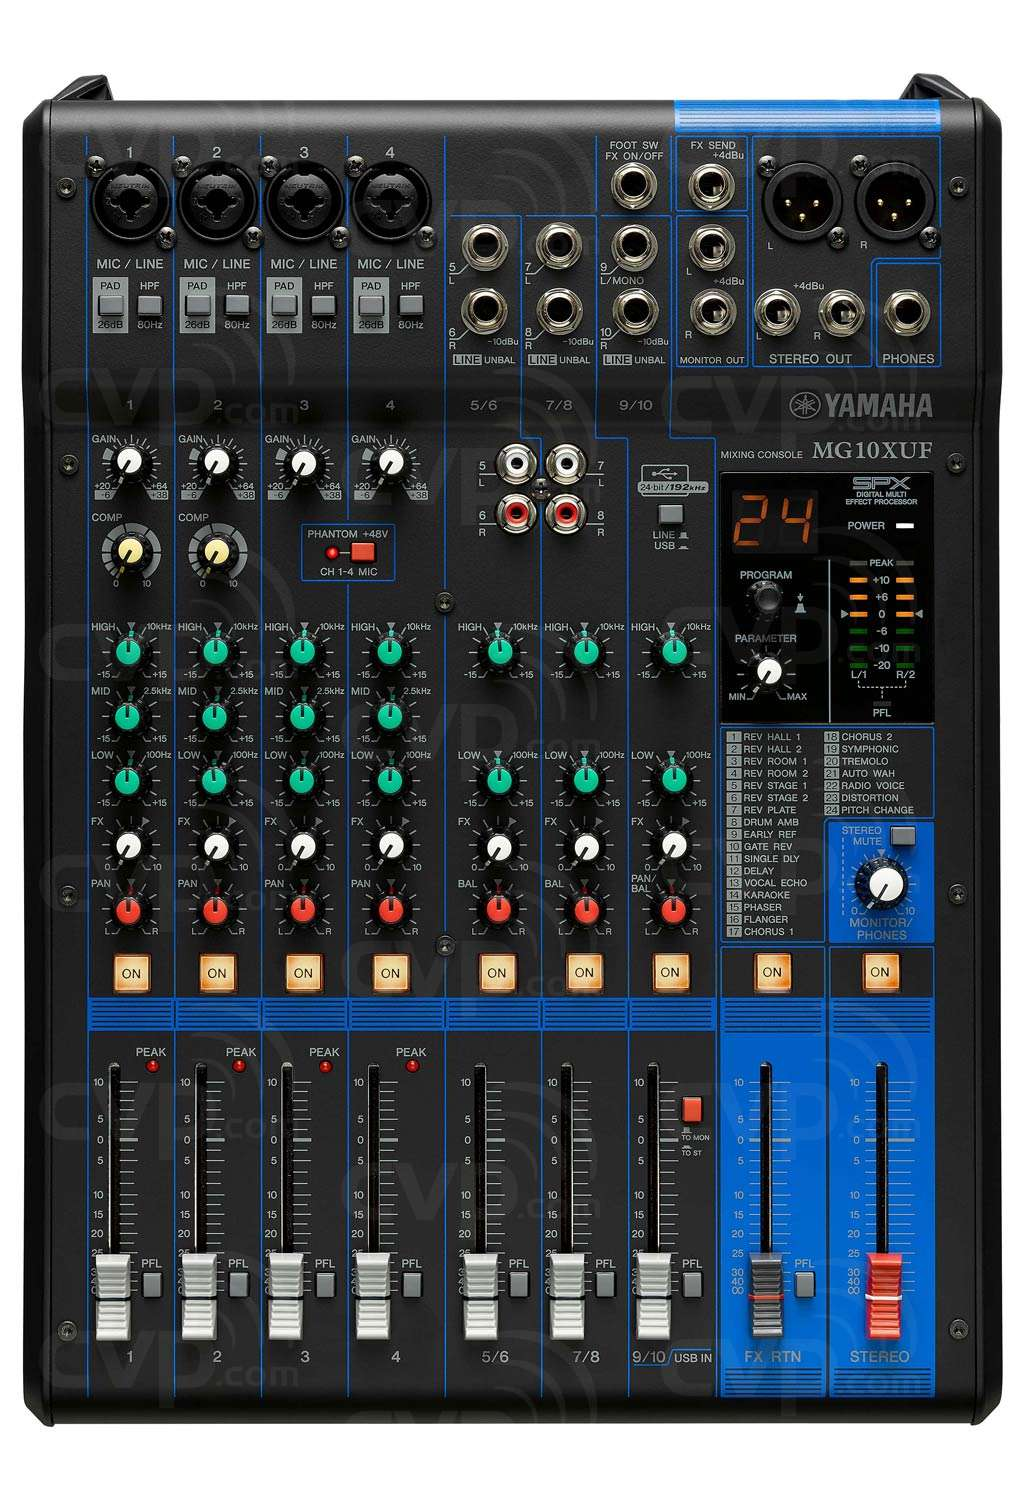 Buy Yamaha Mg10xuf 10 Channel Mixing Console With Max 4 Mic Electronics At Glance Lets Innovate Page 2 A